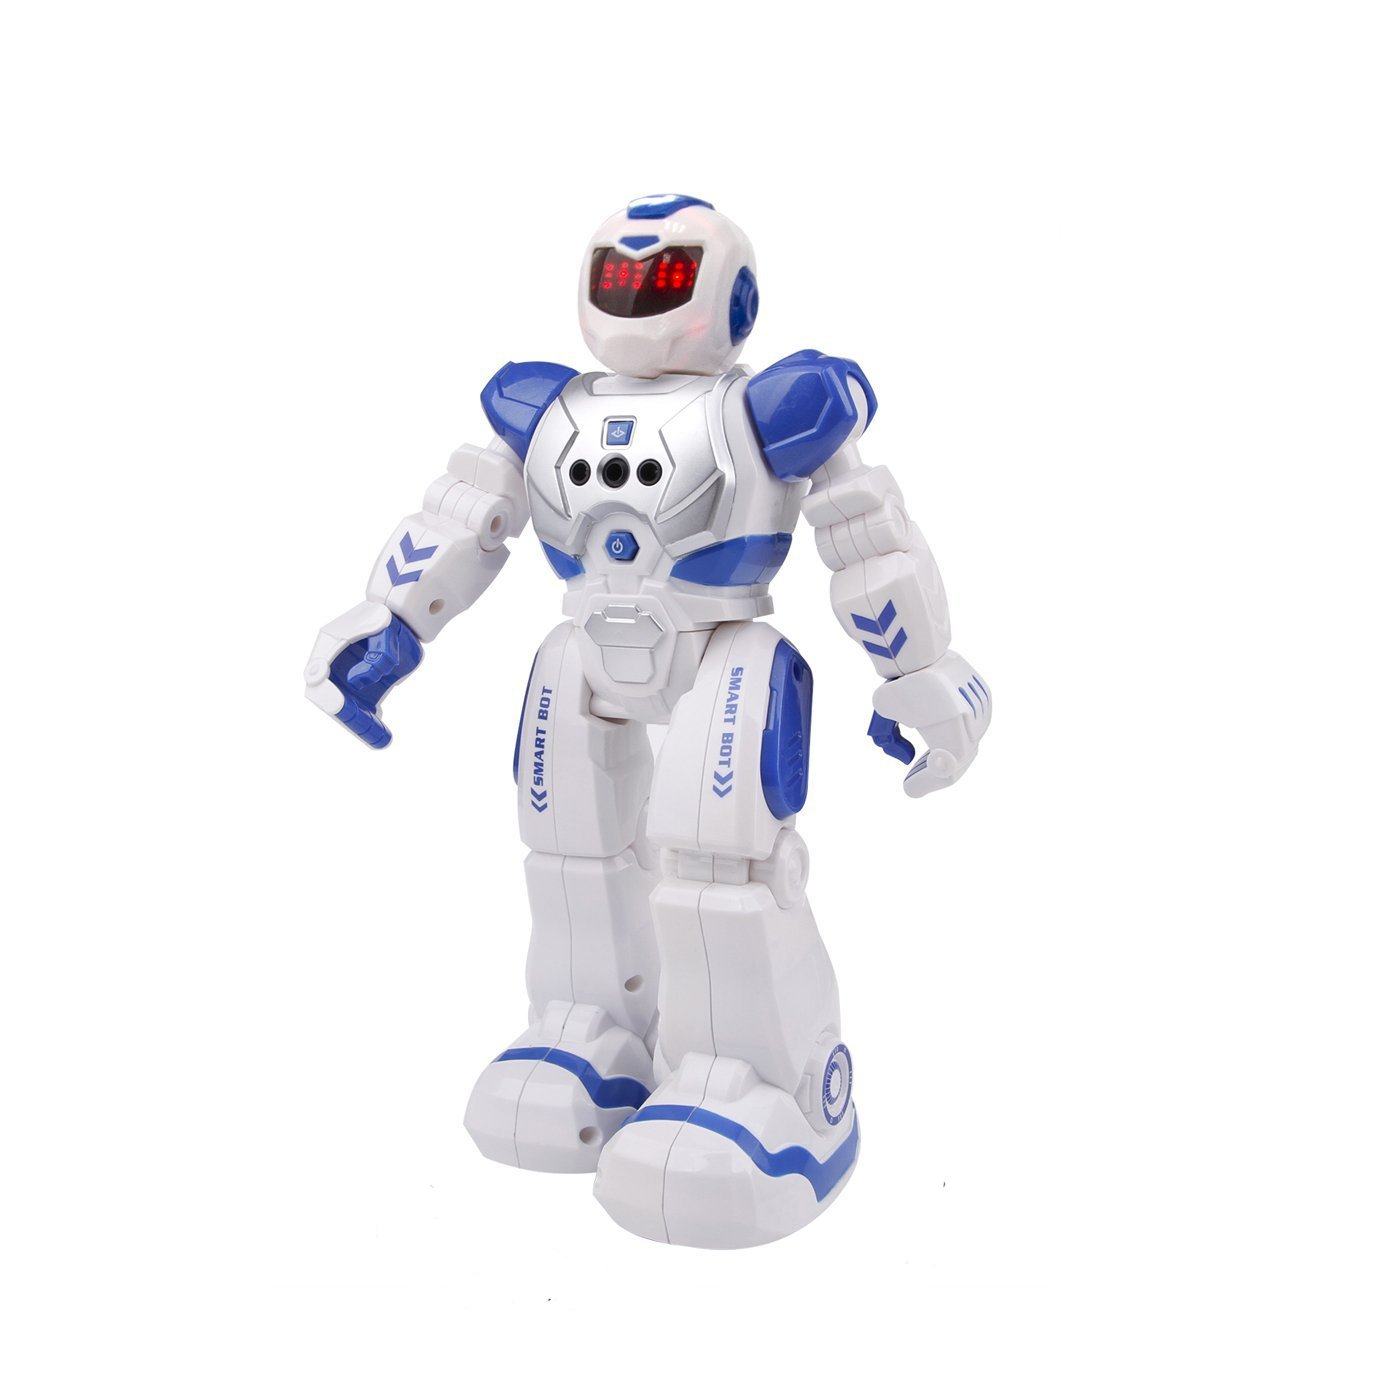 Remote Control RC Toy Robot Interactive Walking Singing Dancing for Kids Boys Girls Gifts, Programmable Gesture Sensing Robot Toys